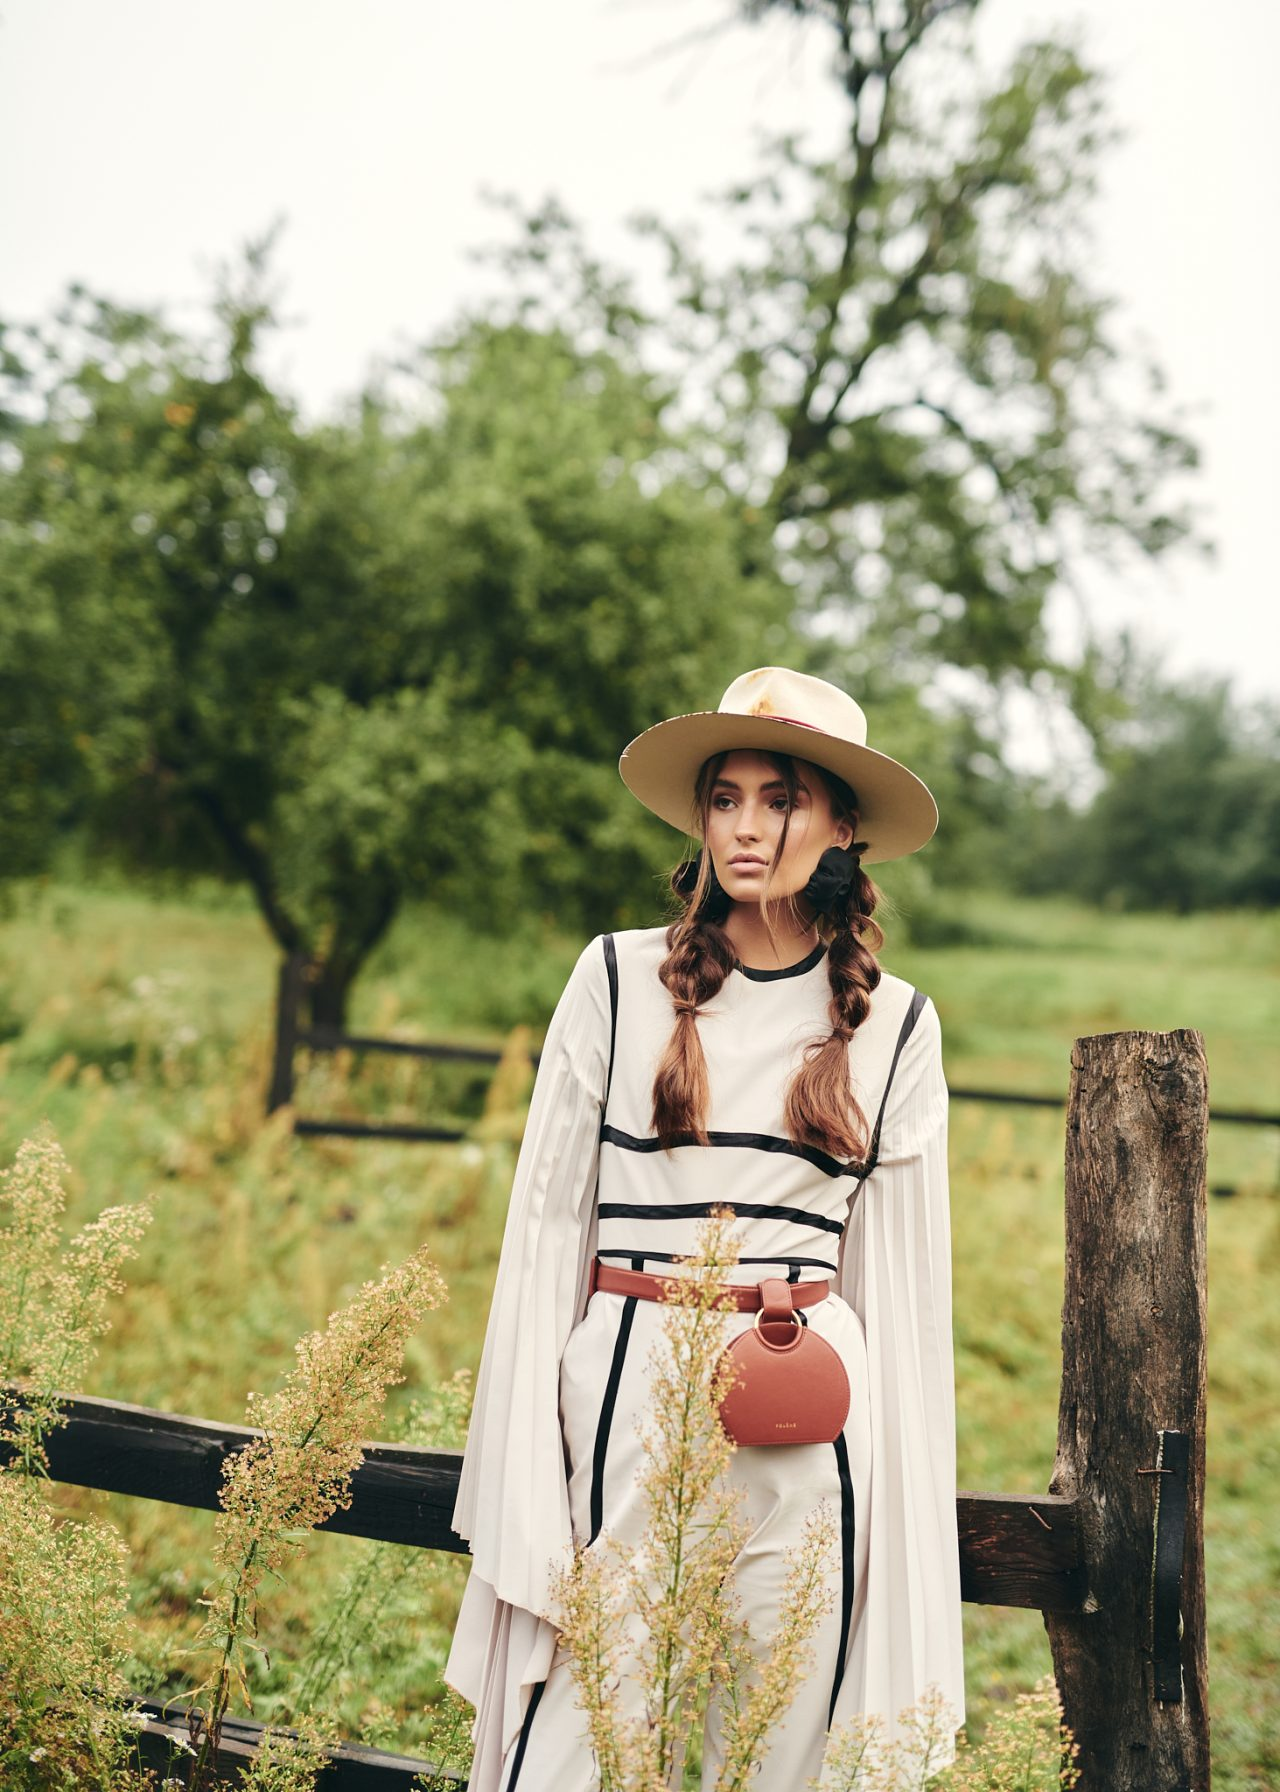 Countryside_Elle_Girl_web9